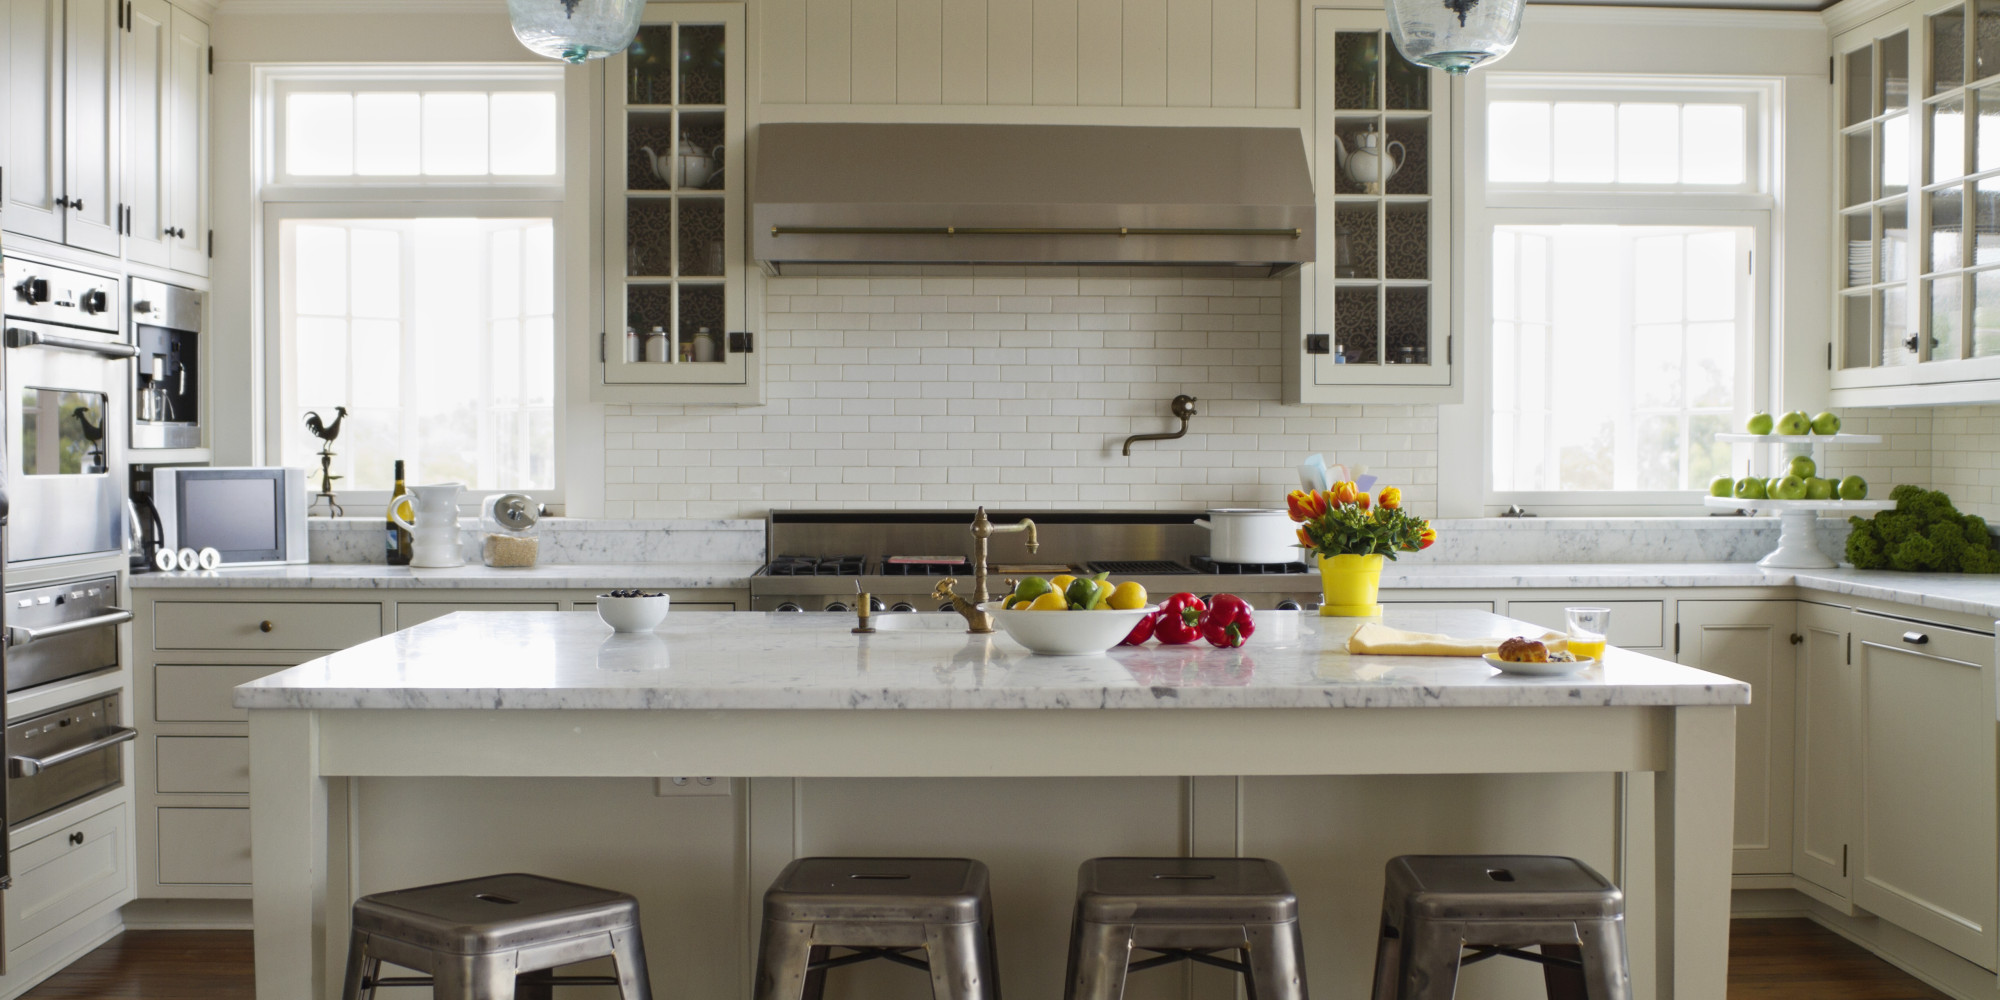 Latest Kitchen Cabinet Trends The 3 Biggest Kitchen Trends Of 2014 Might Surprise You